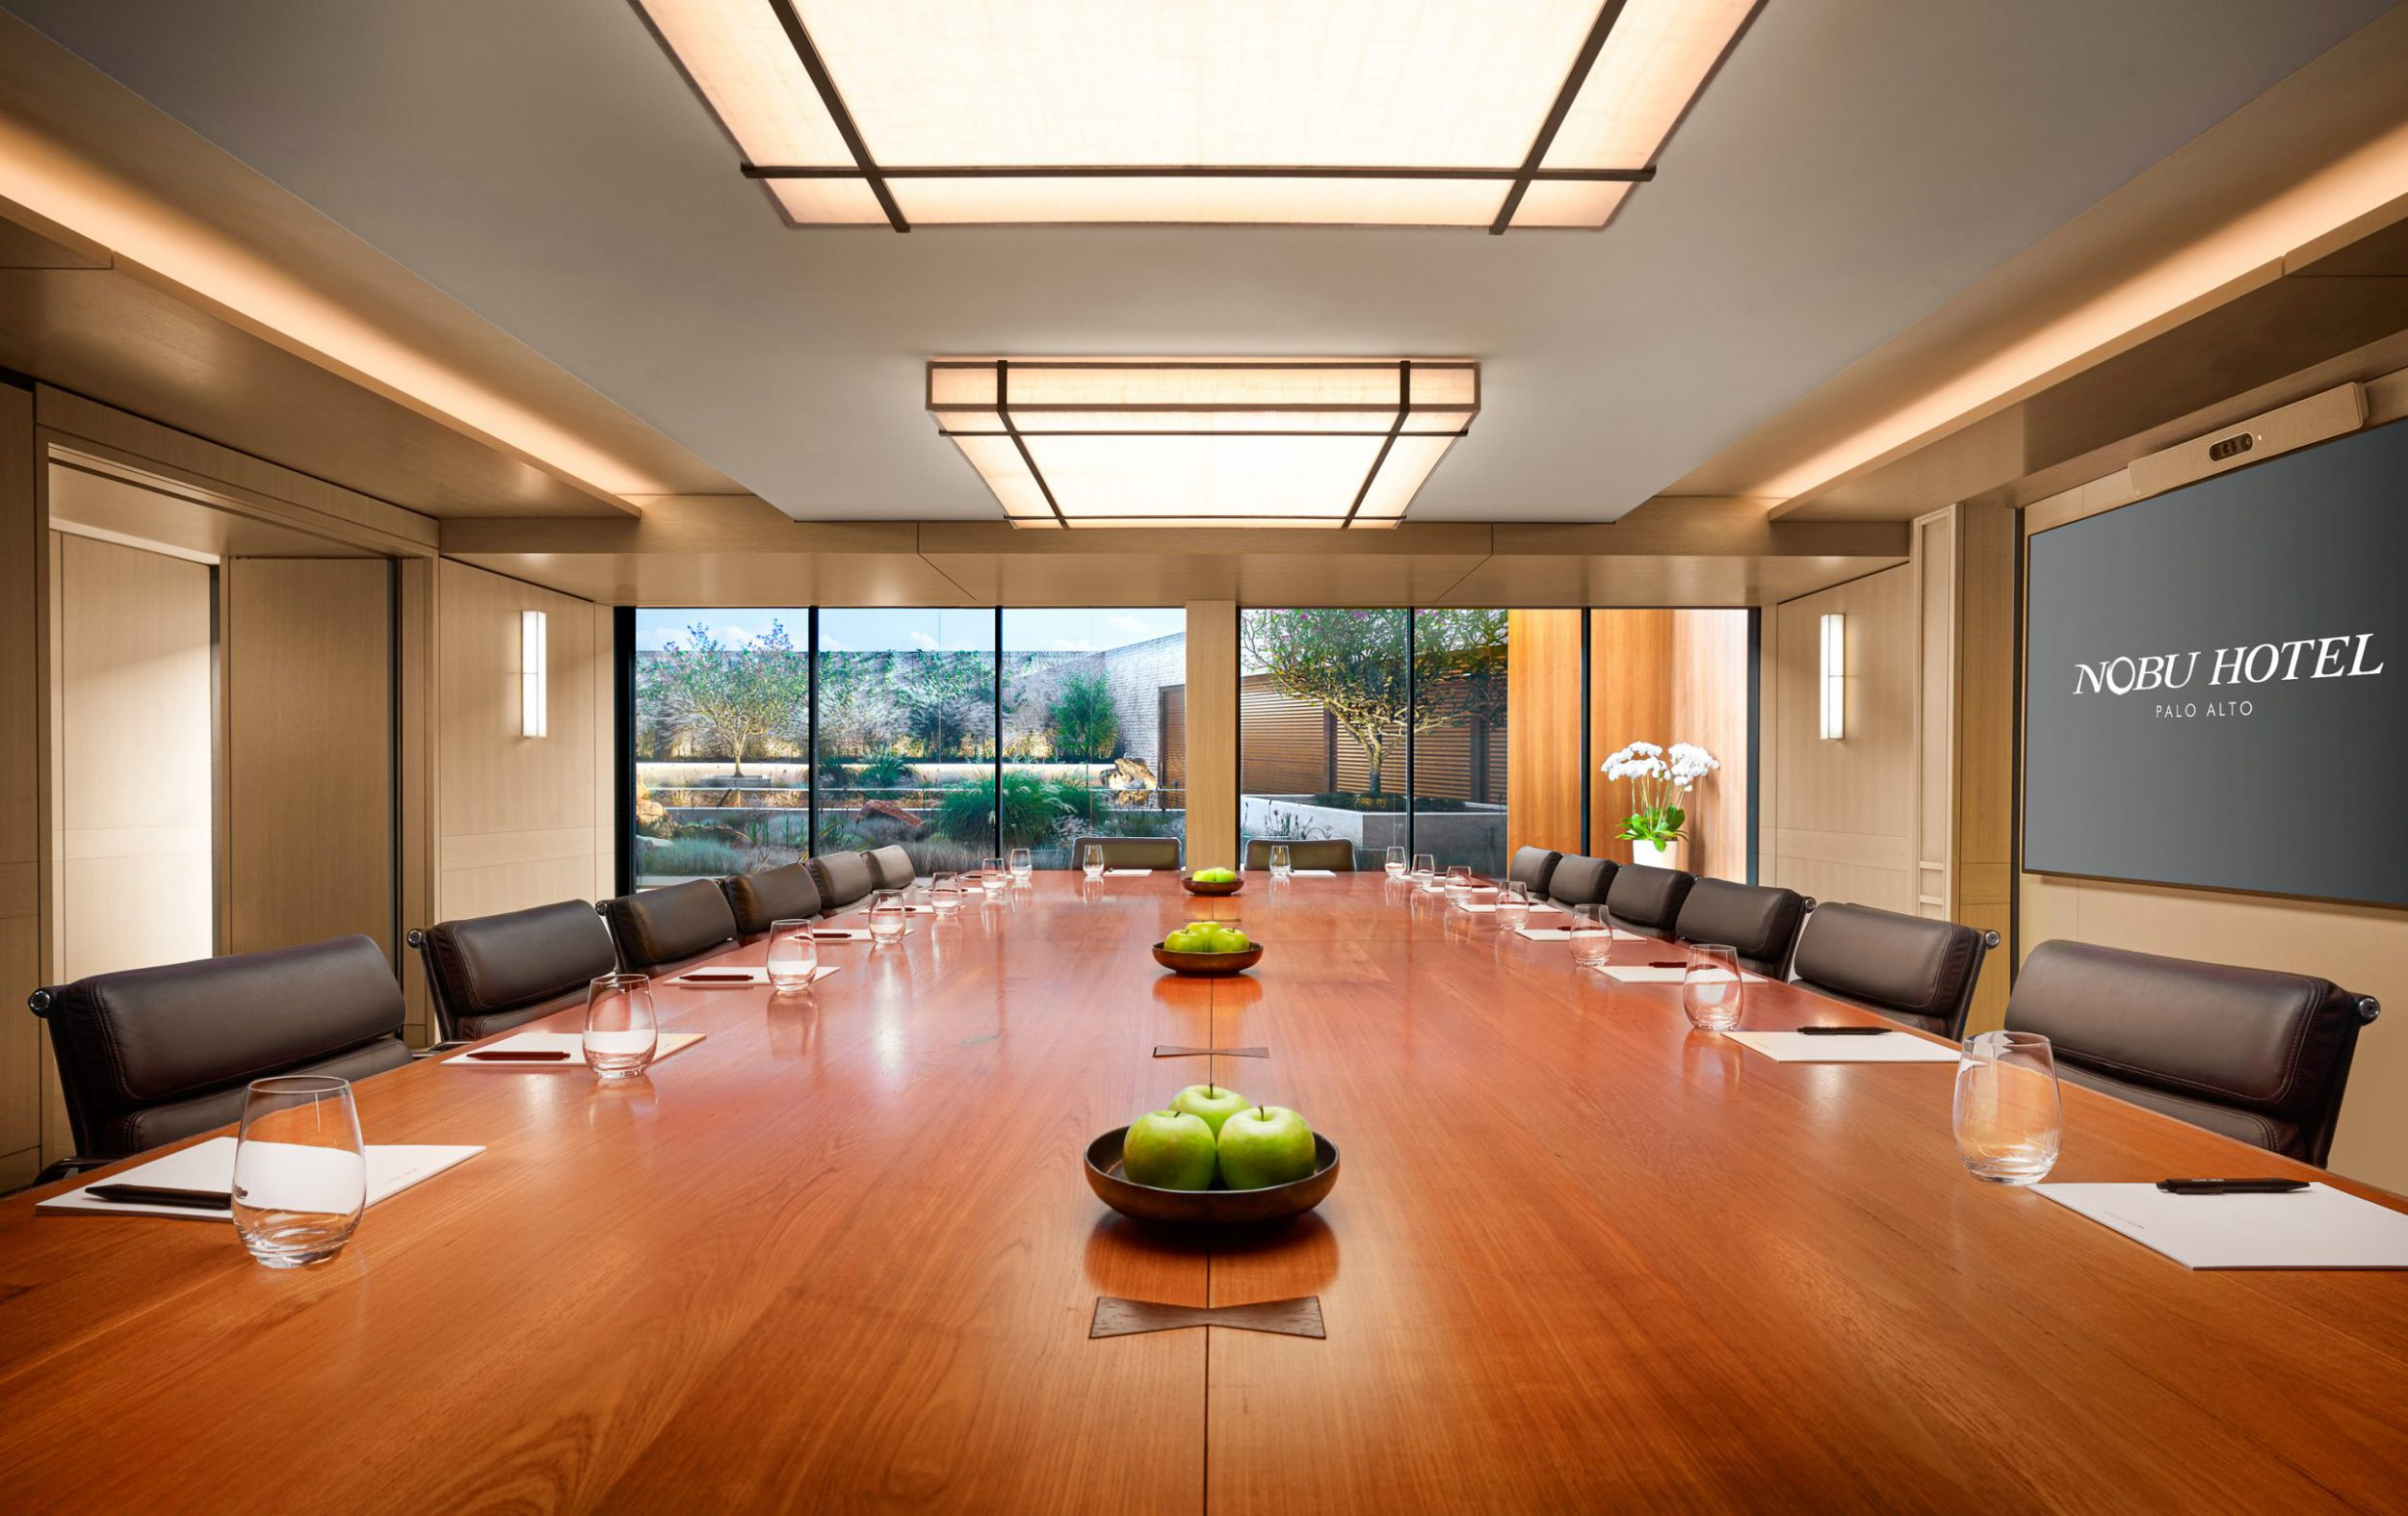 boardroom with conference table, chairs and large windows with garden view